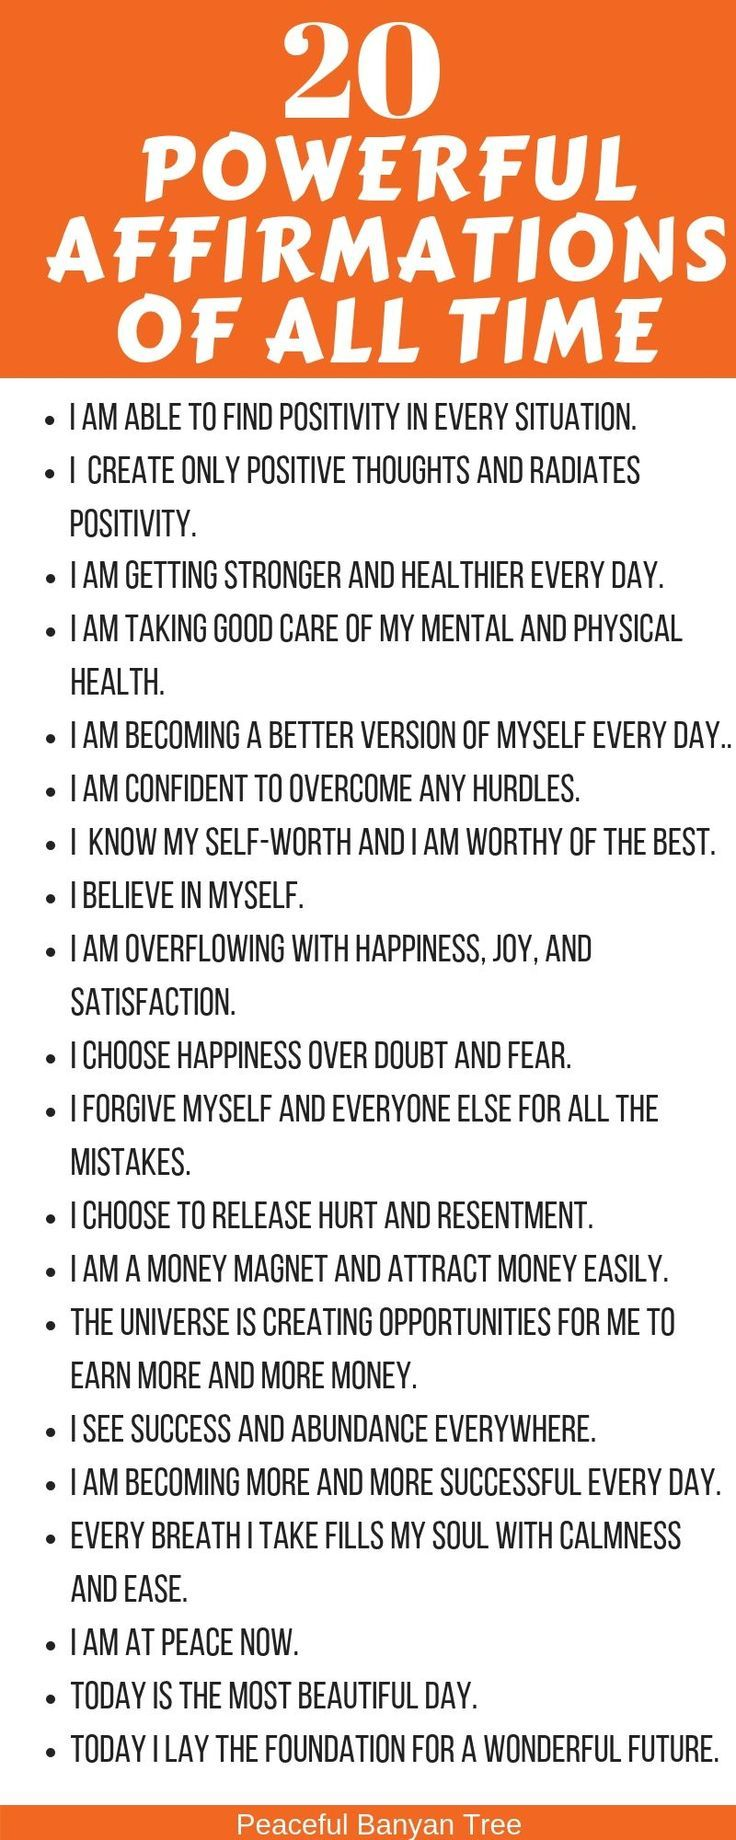 Affirmations are the best way to start your day with positivity. They can give you the boost you need for the whole day. These 20 powerful affirmations are my favorites which I swear by. You must try these! #affirmations, #morningaffirmations, #empowering